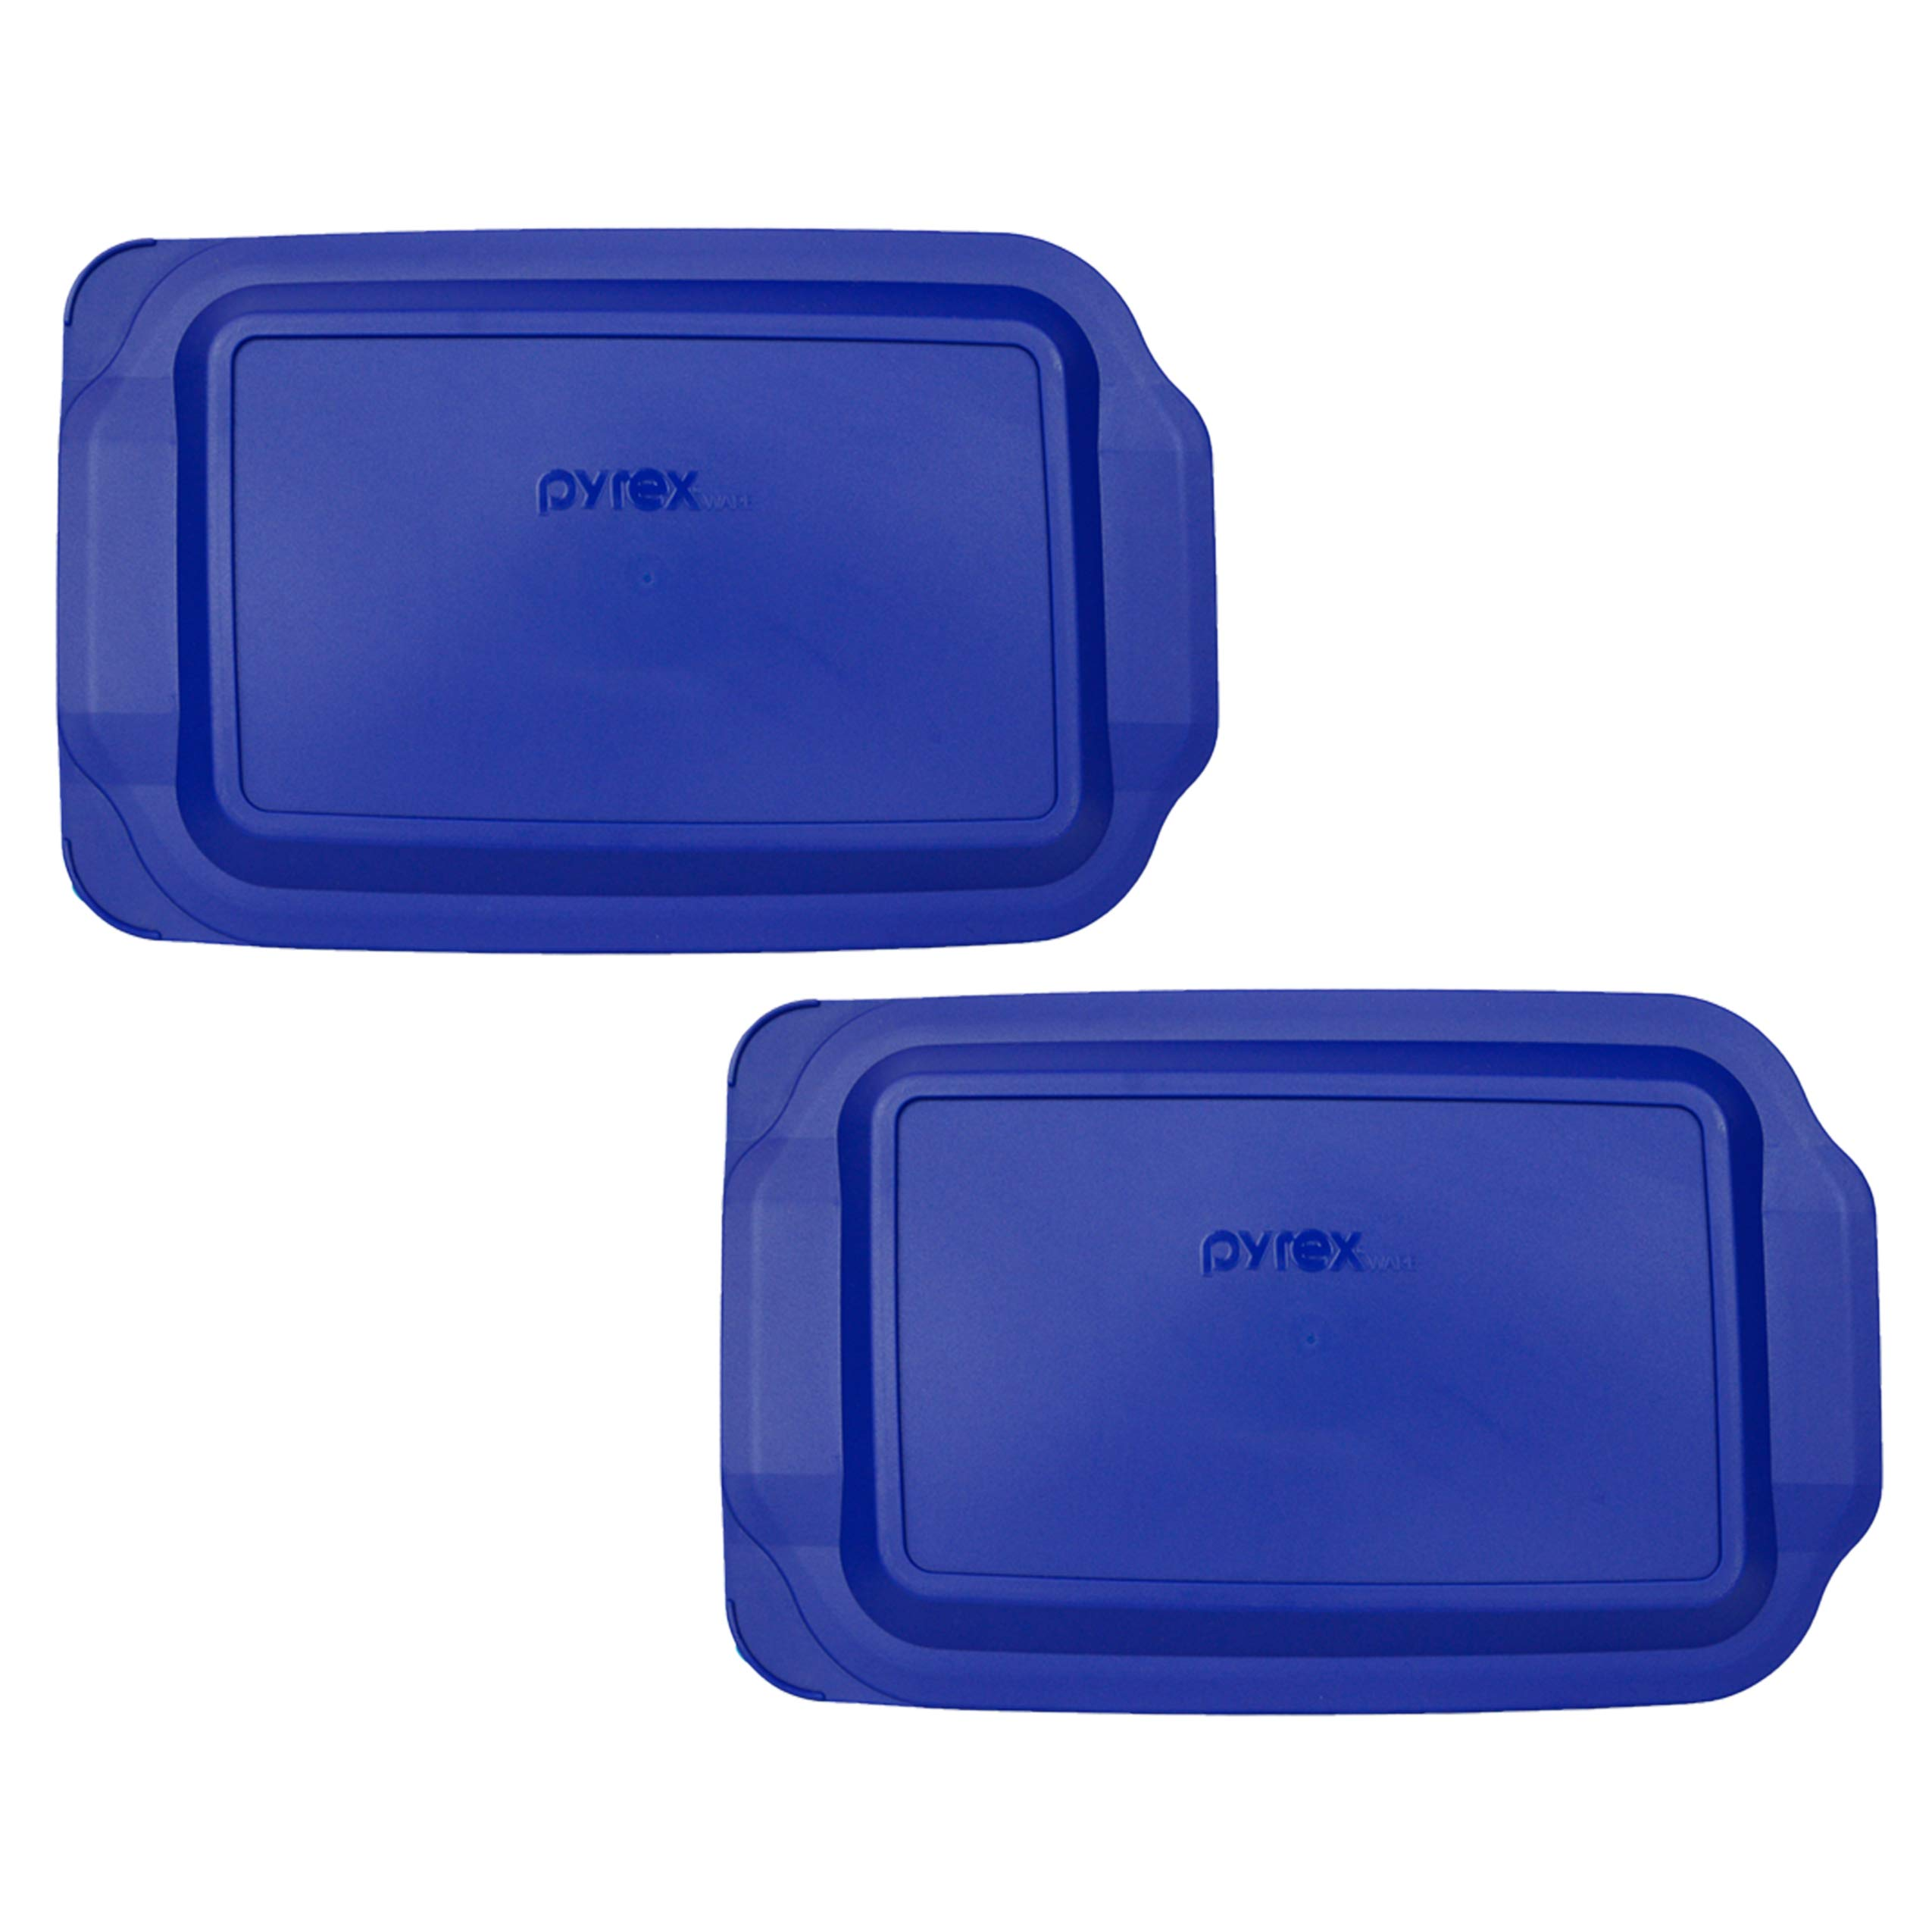 (2) Pyrex 233-PC 3 Quart Blue 9'' x 13'' Baking Dish Lids - Will NOT Fit Easy Grab Baking Dish by Pyrex (Image #1)